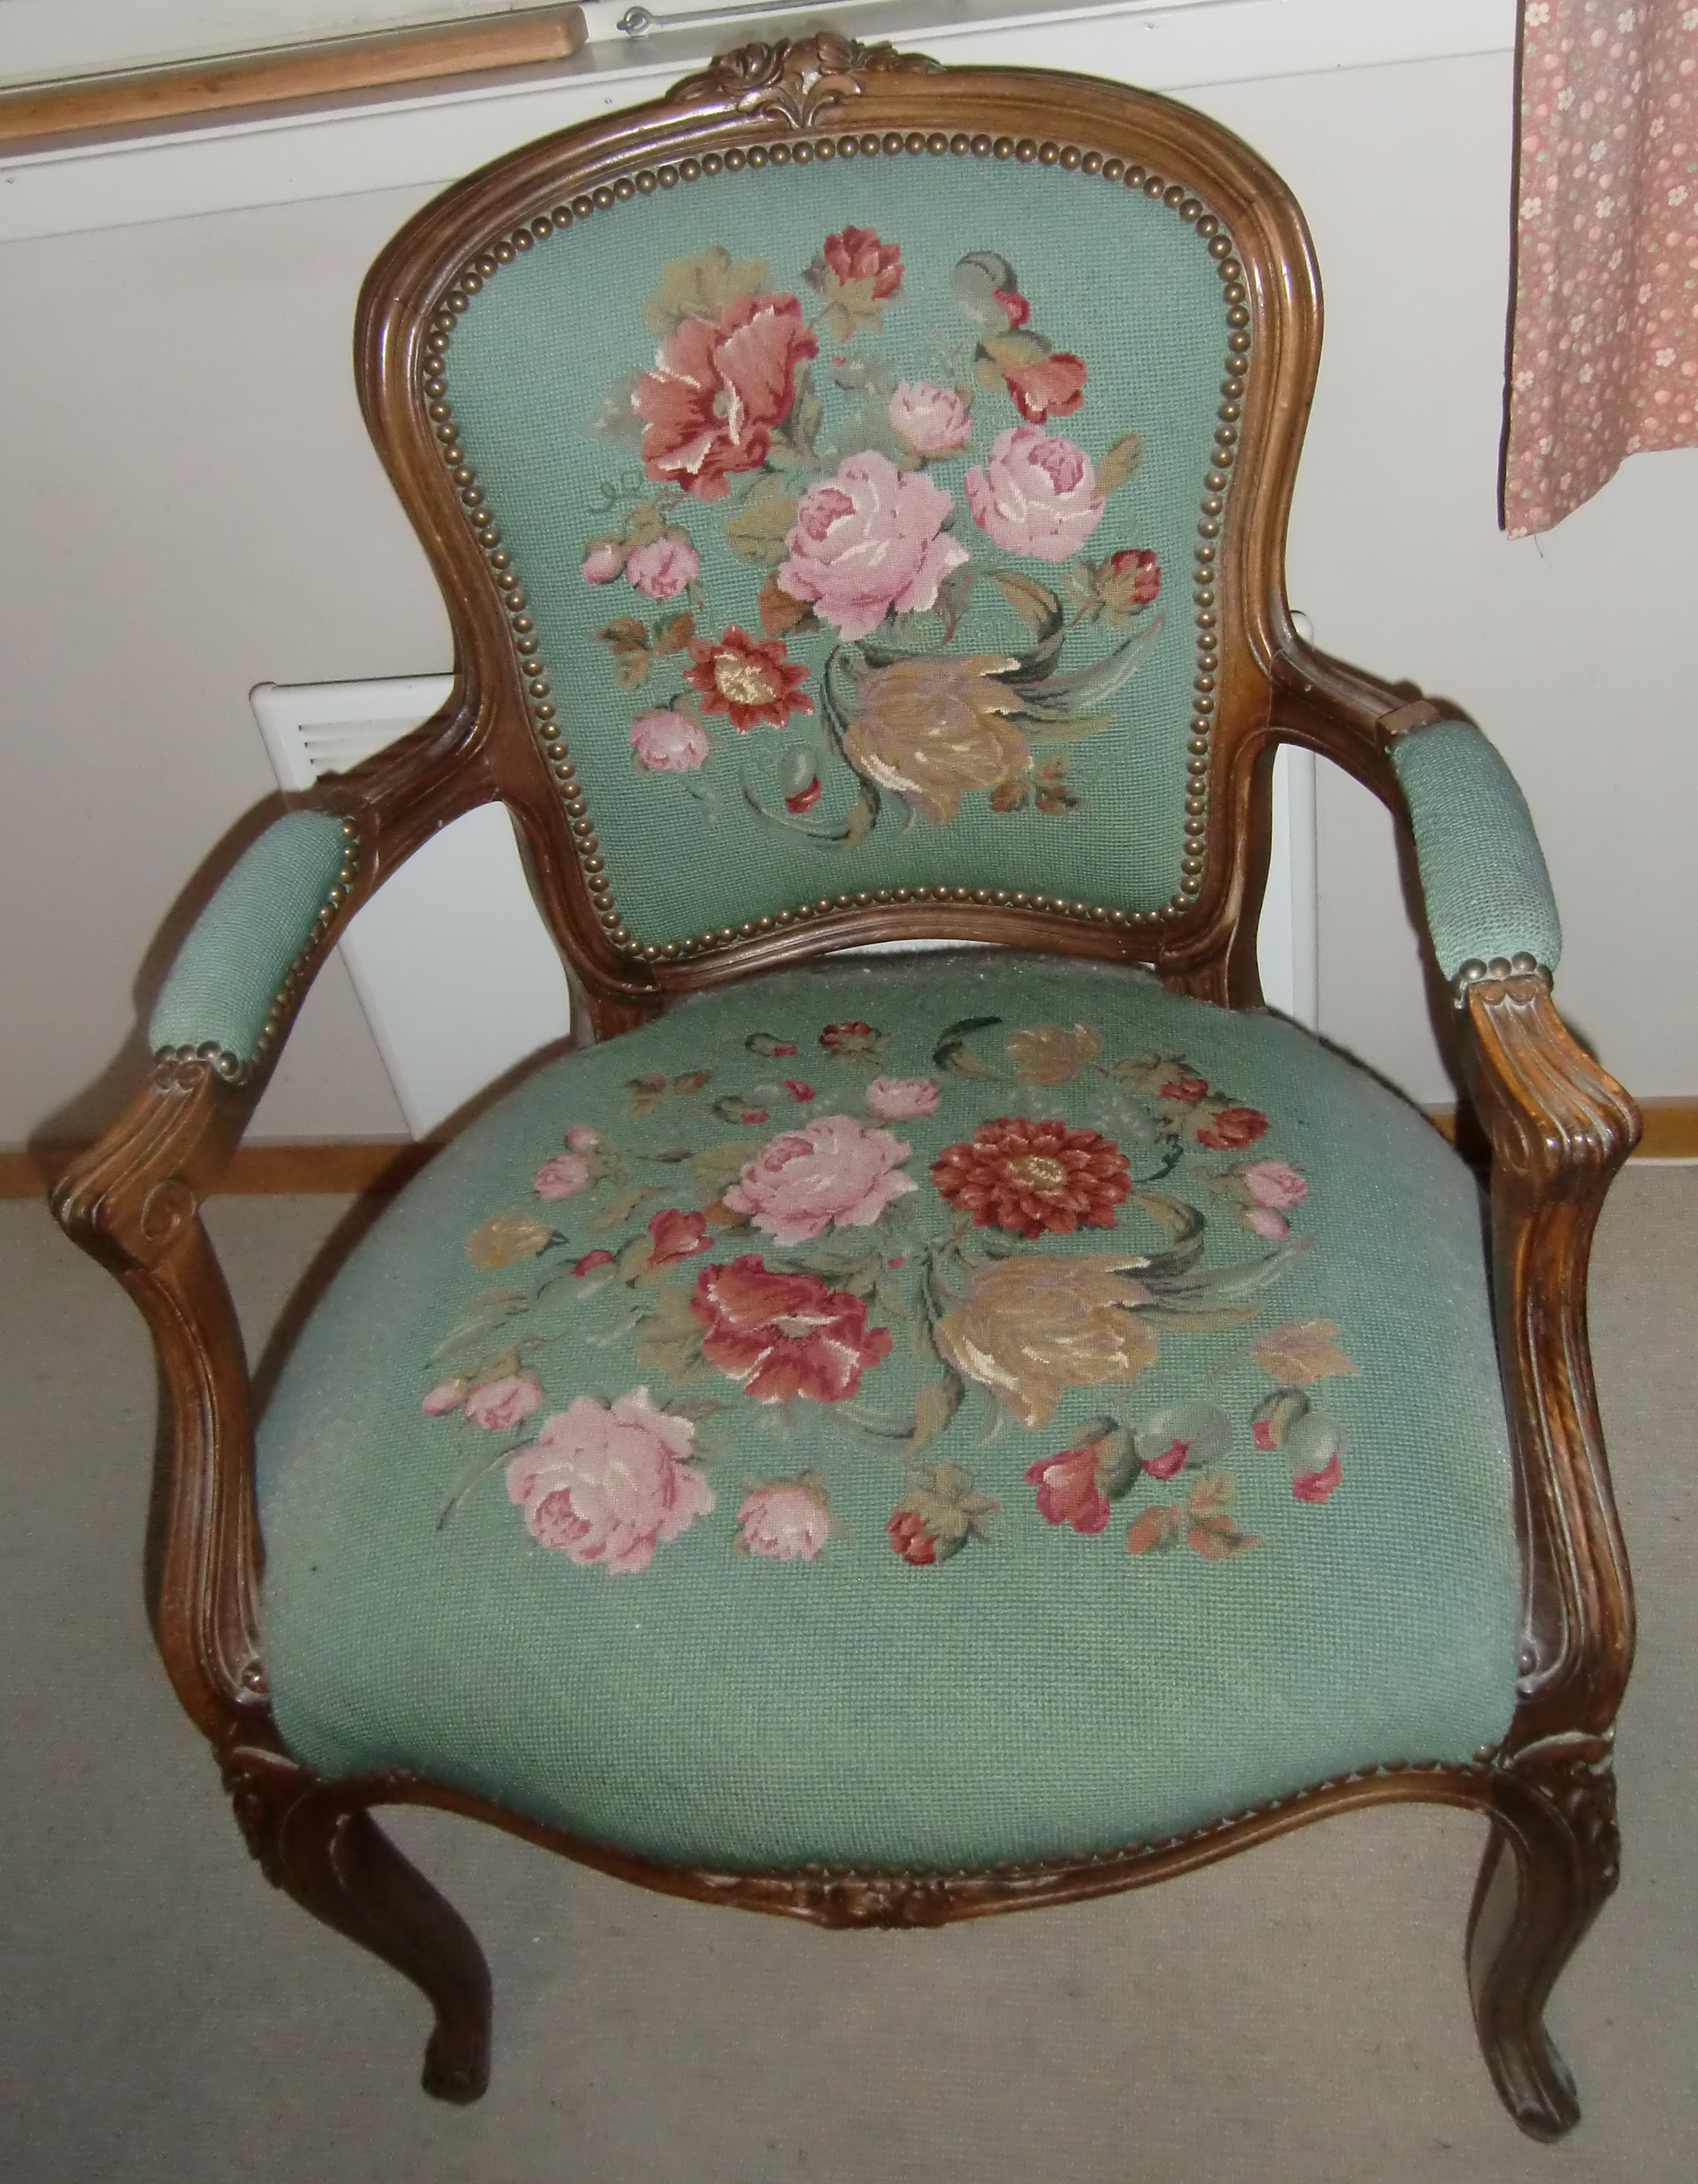 M889M Chair with petit point embroidery